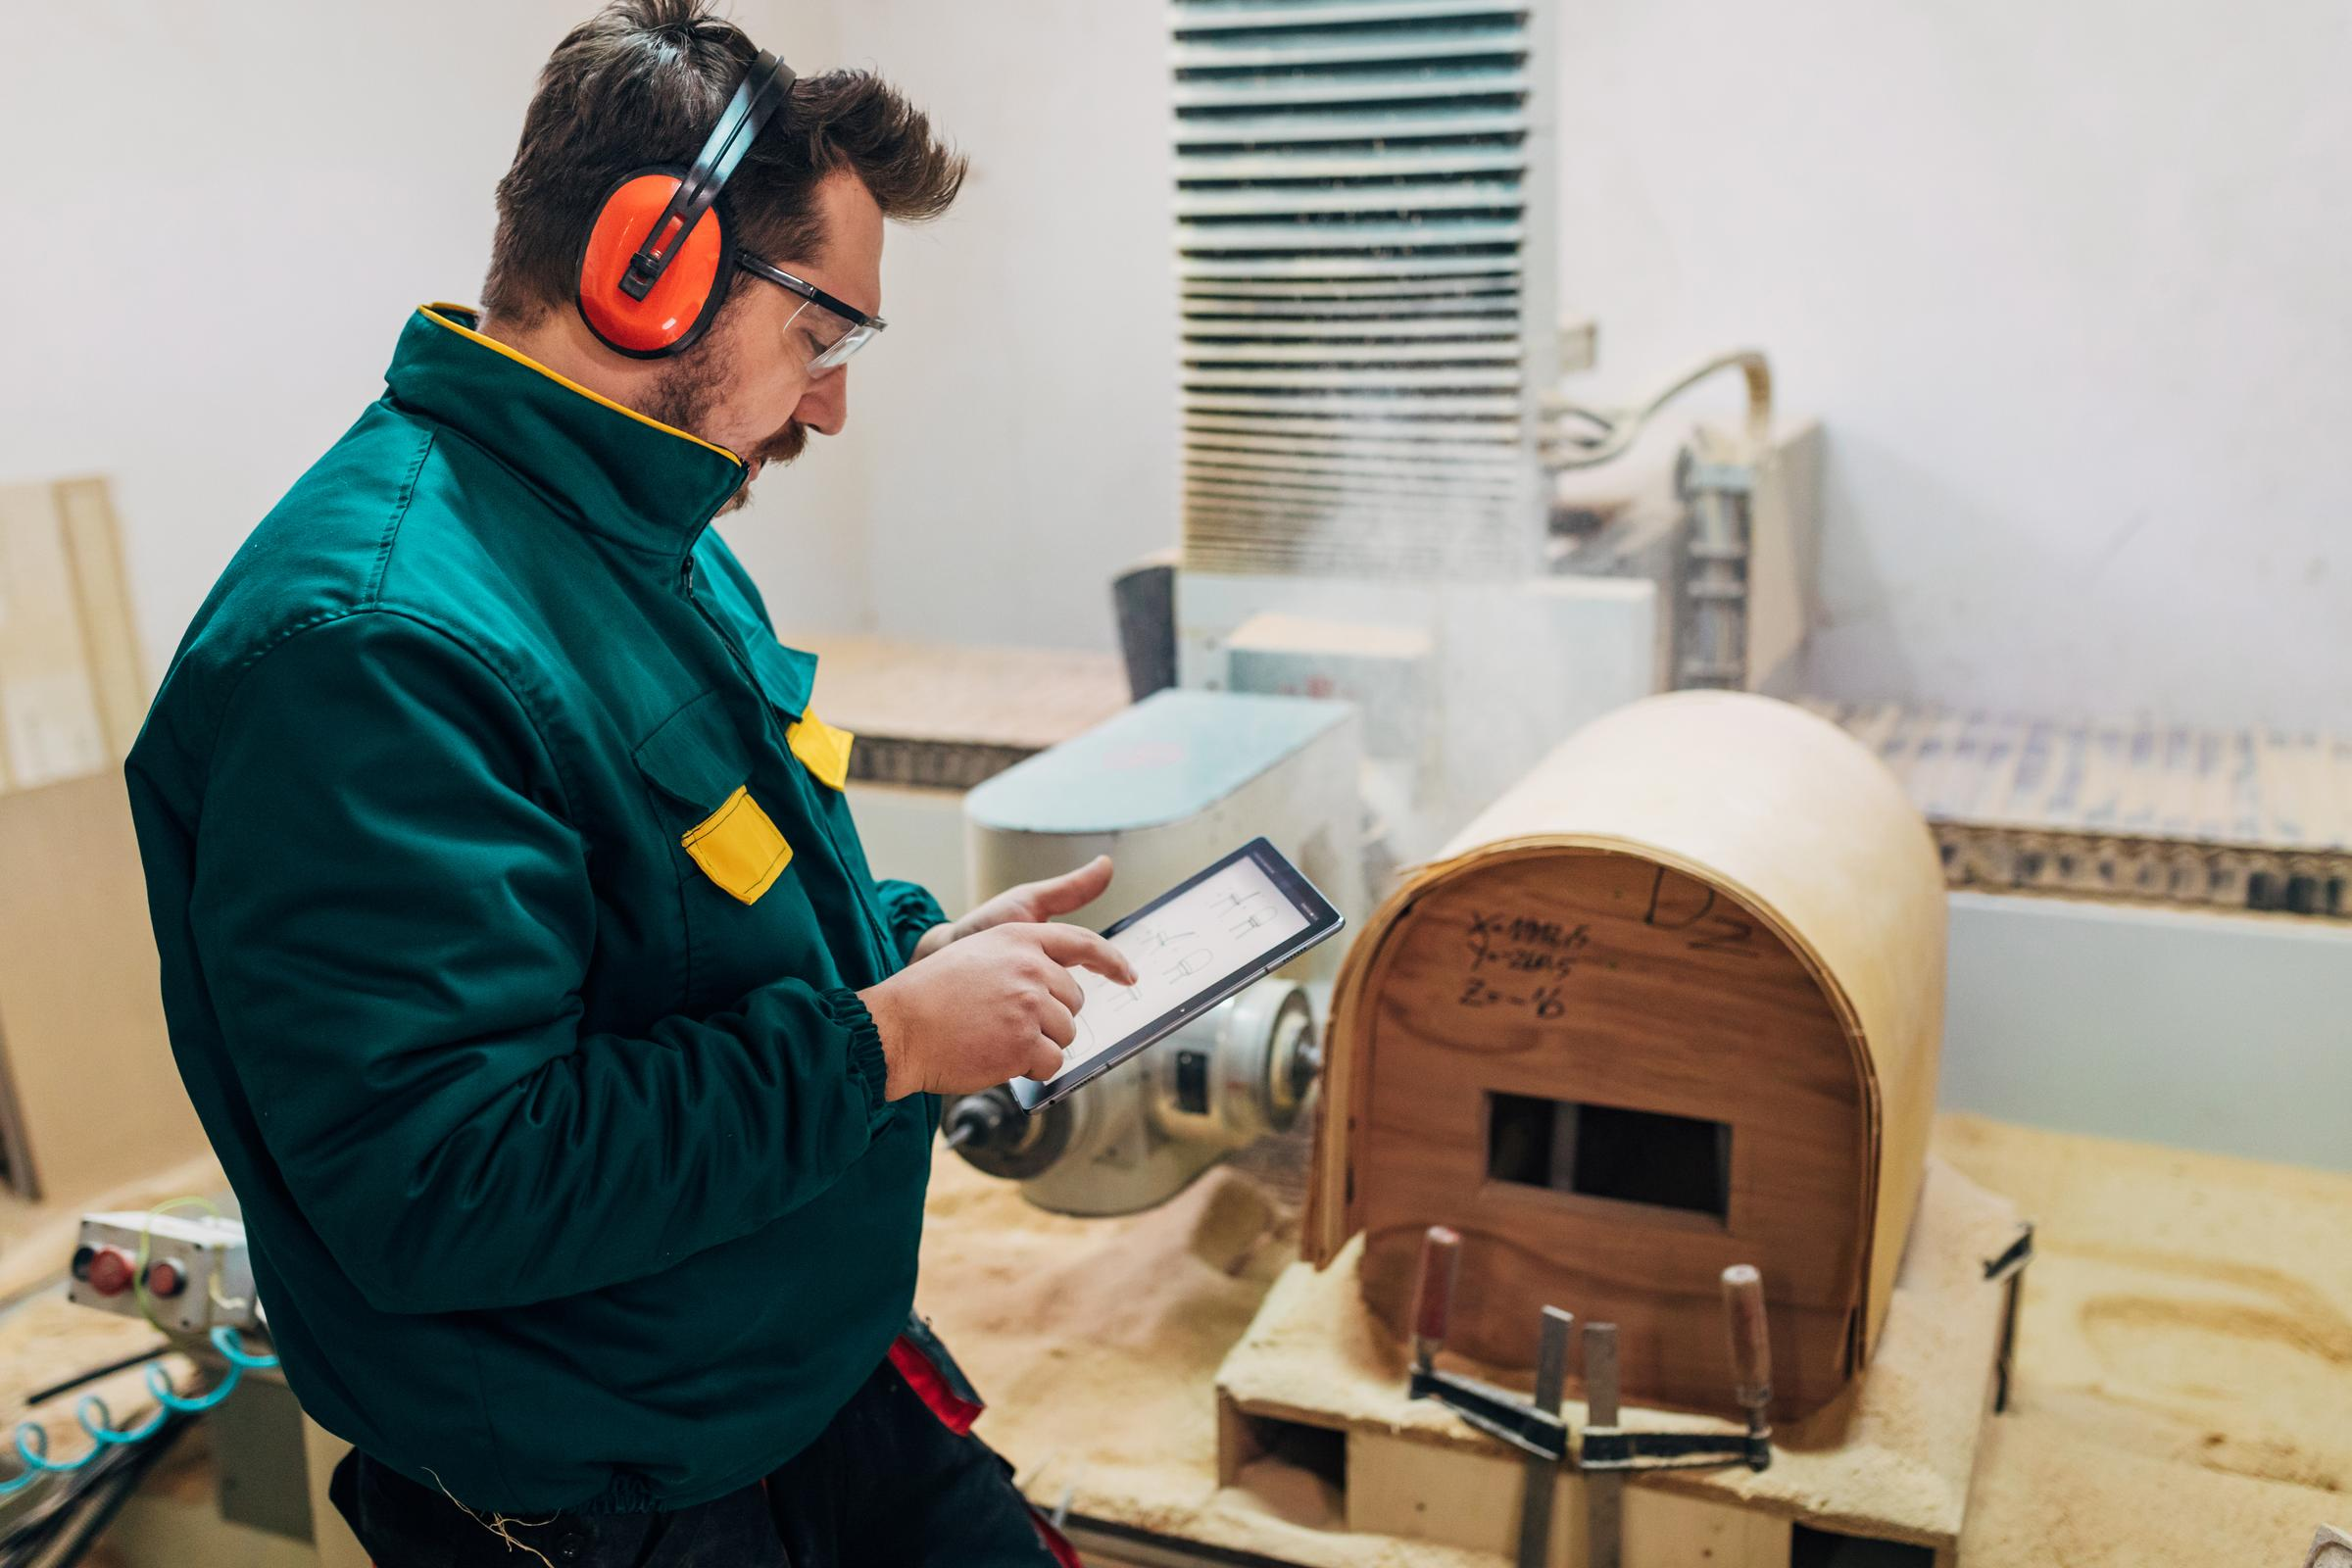 An image shows a man using a table to search for wood working schematics